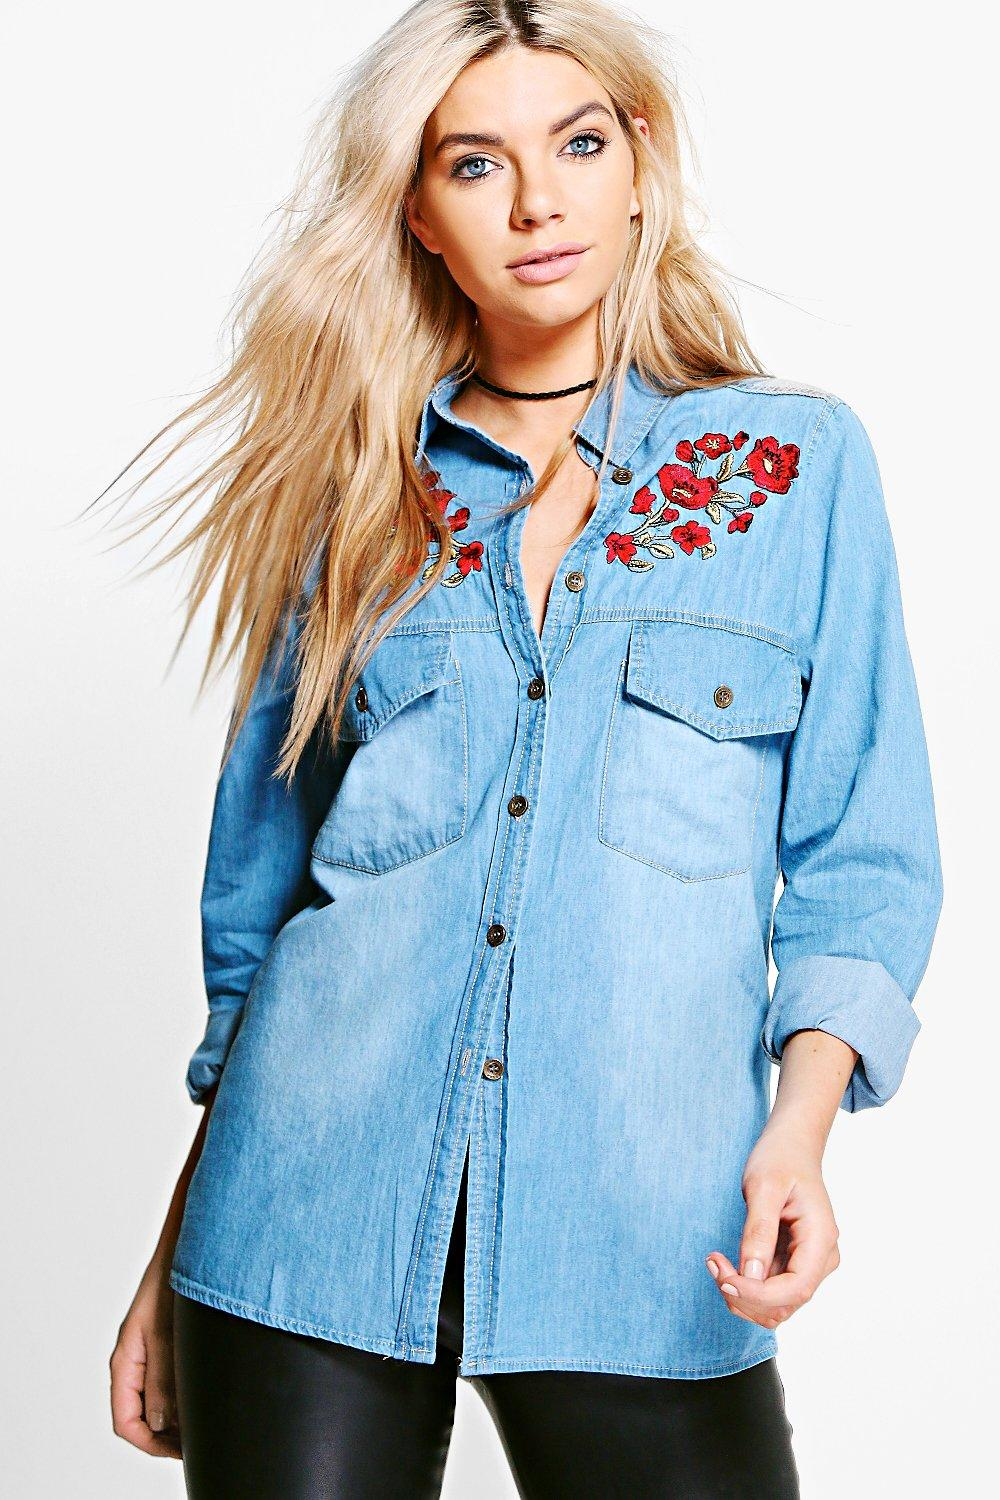 1e9aa540a5 Alyson Floral Embroidered Denim Shirt. Hover to zoom